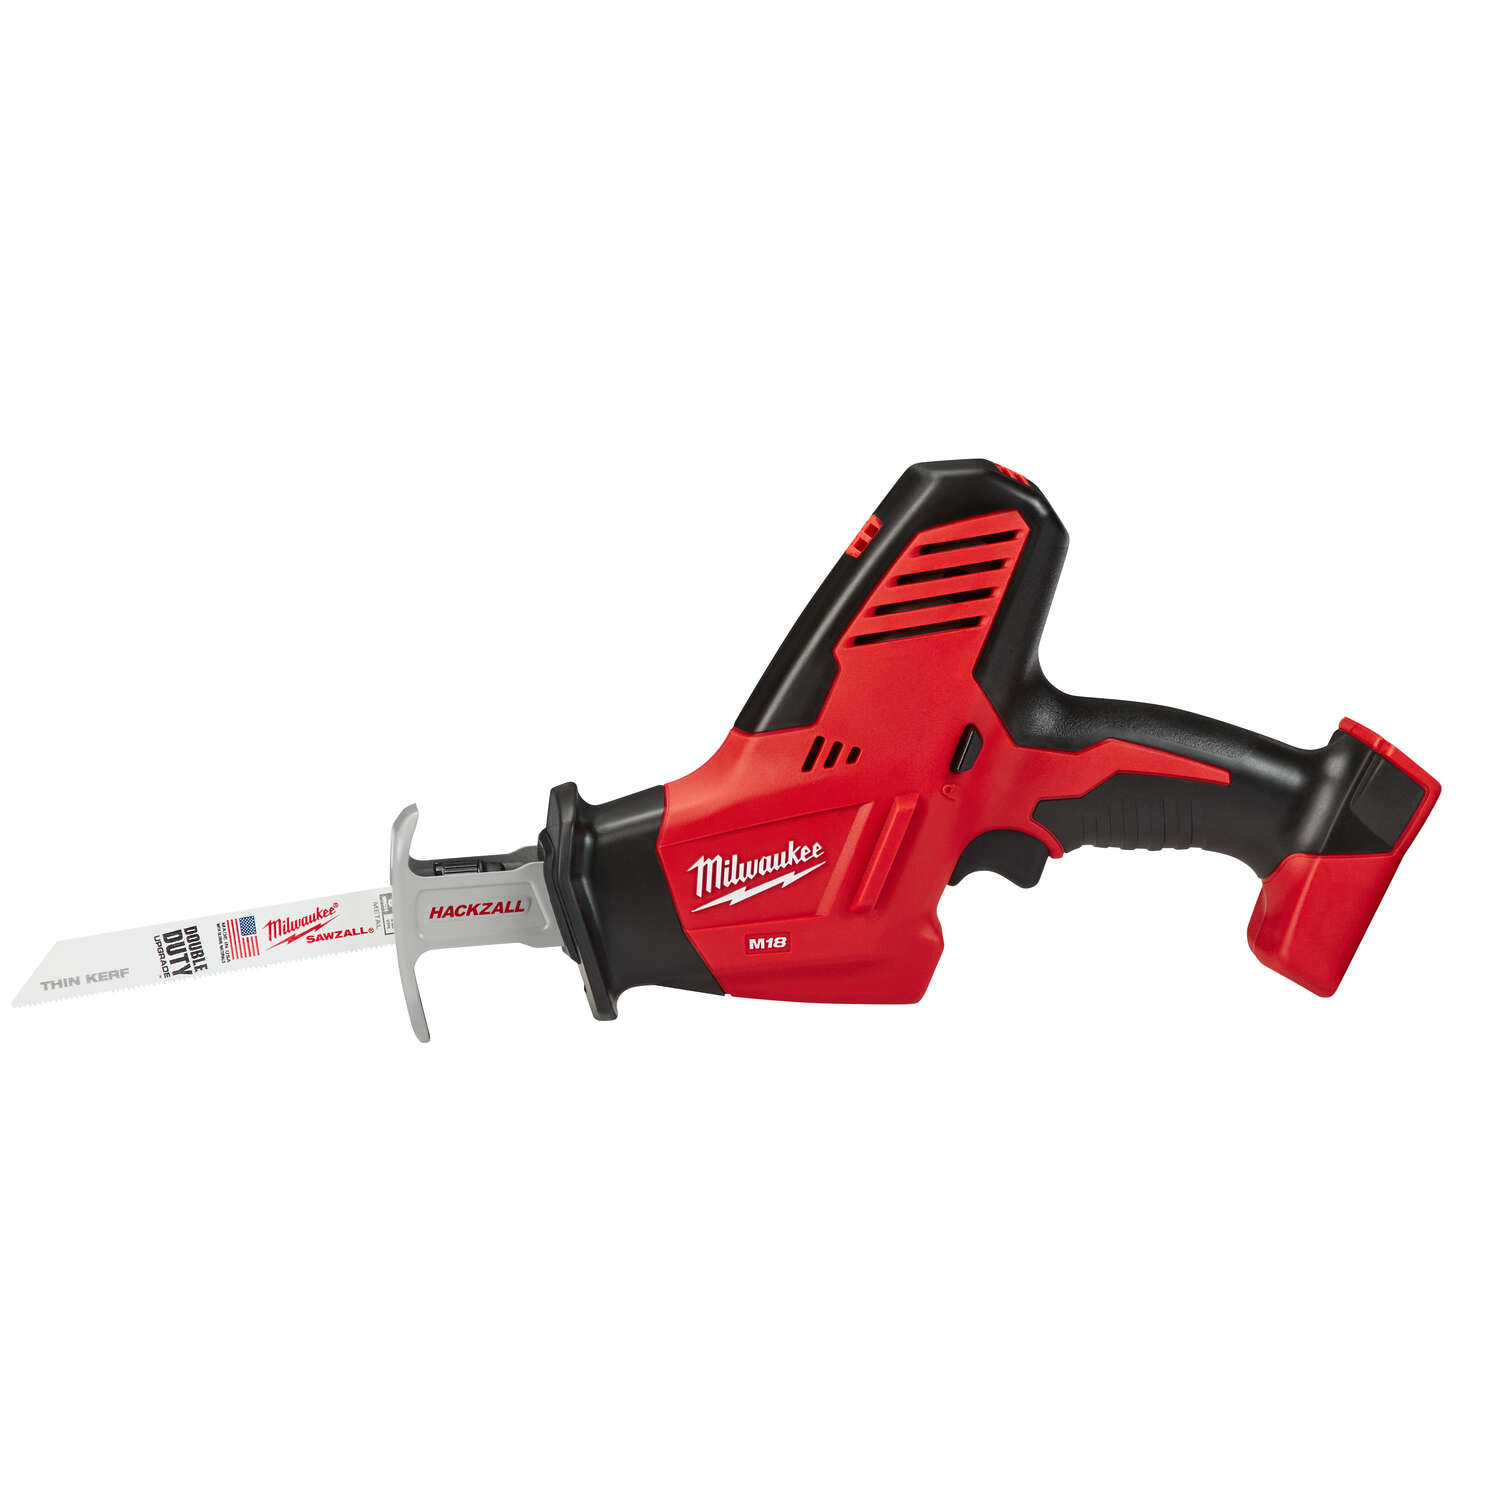 Milwaukee  M18 HACKZALL  3/4 in. Cordless  Reciprocating Saw  18 volt 3000 spm